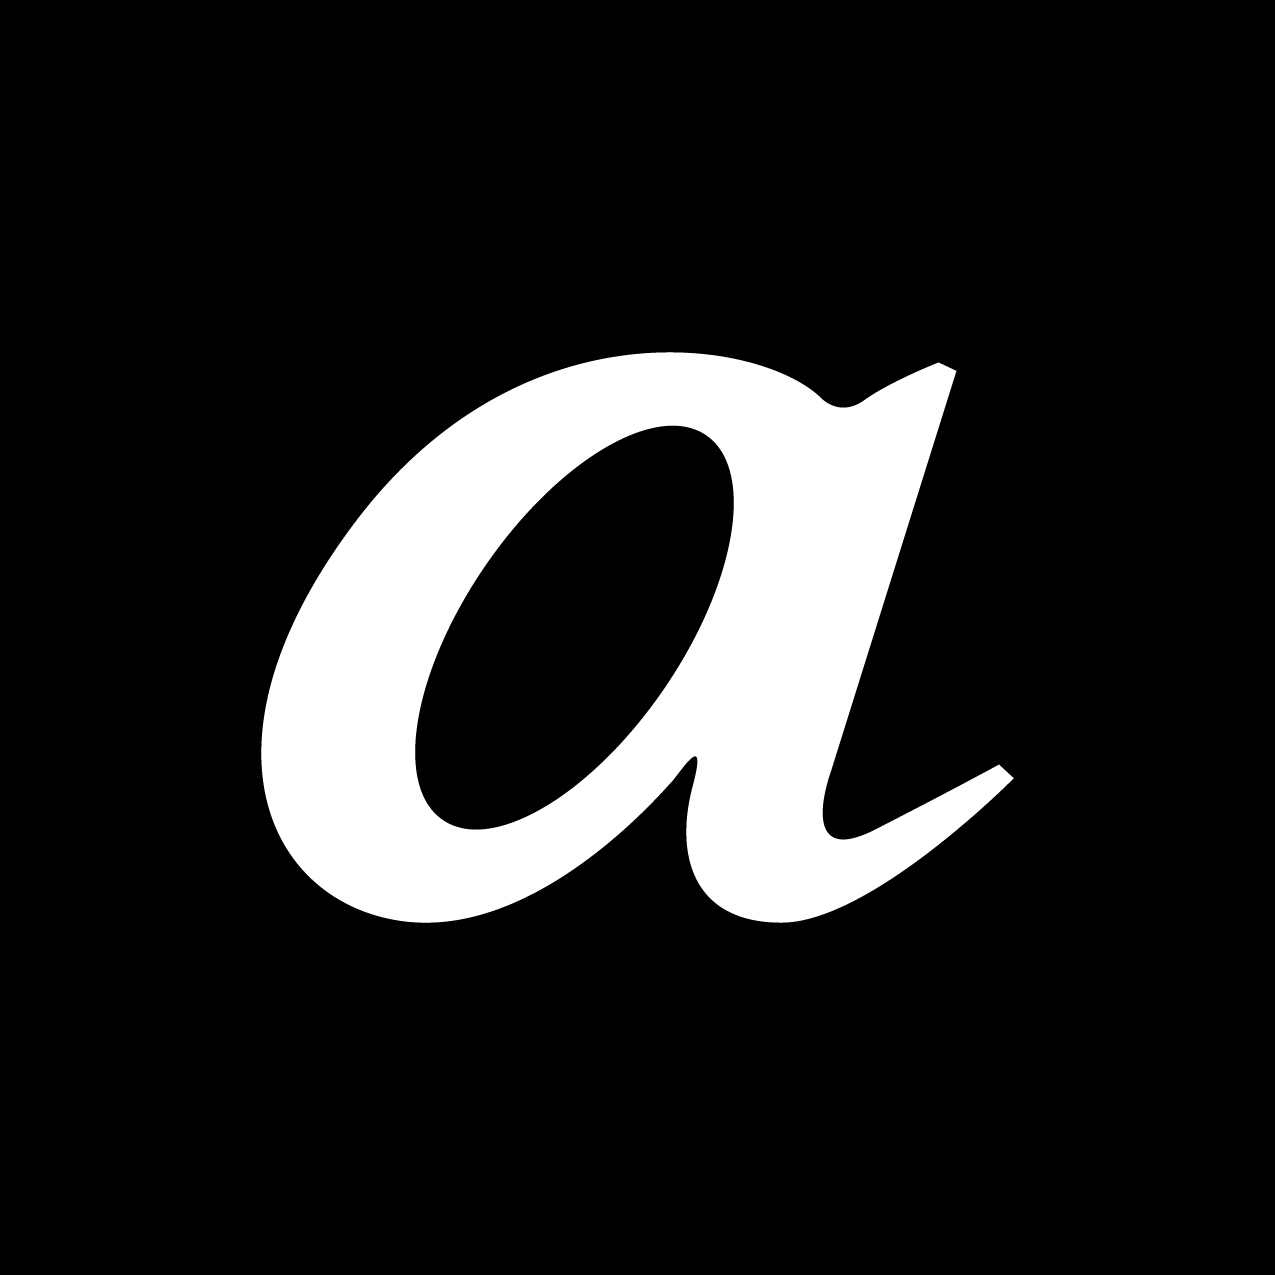 Letter A11 design by Furia